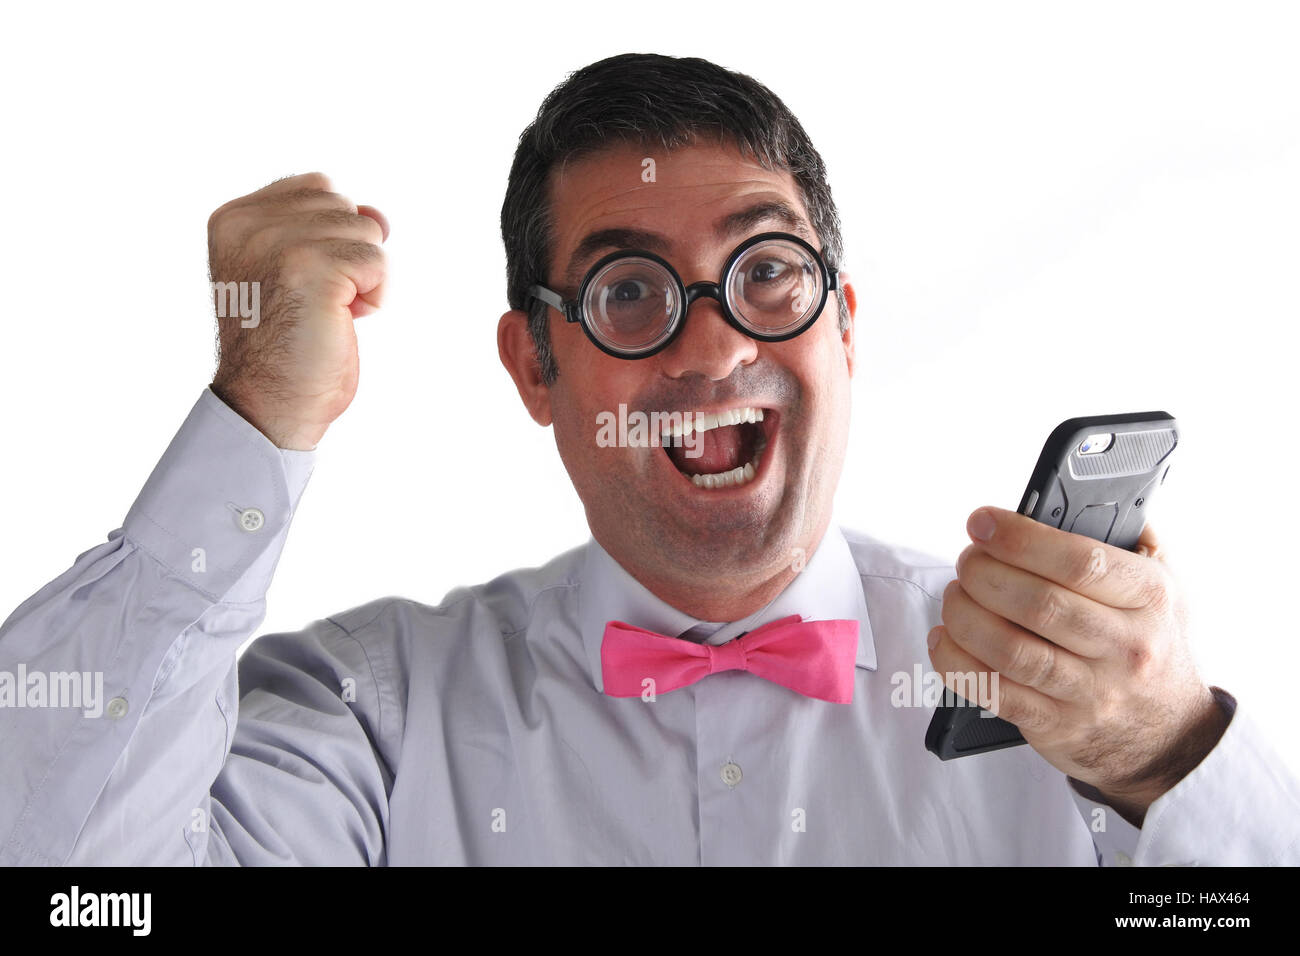 Happy Geeky man receives  an exciting message or phone call. Communication concept. Real people copy space Stock Photo